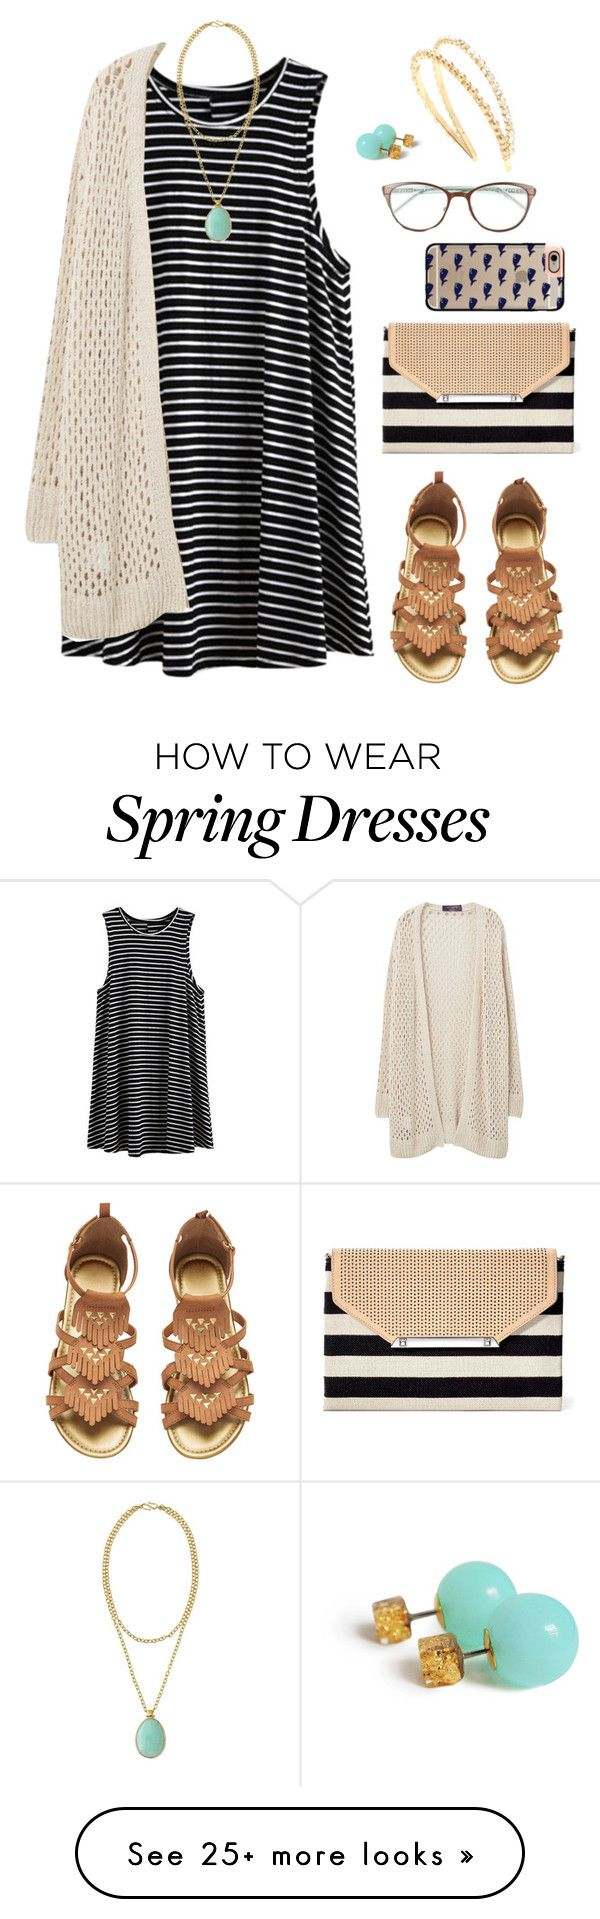 """""""Easy in spring"""" by jrowe1969 on Polyvore featuring Violeta by Mango, Stella & Dot, Casetify, Miu Miu and Kate Spade"""